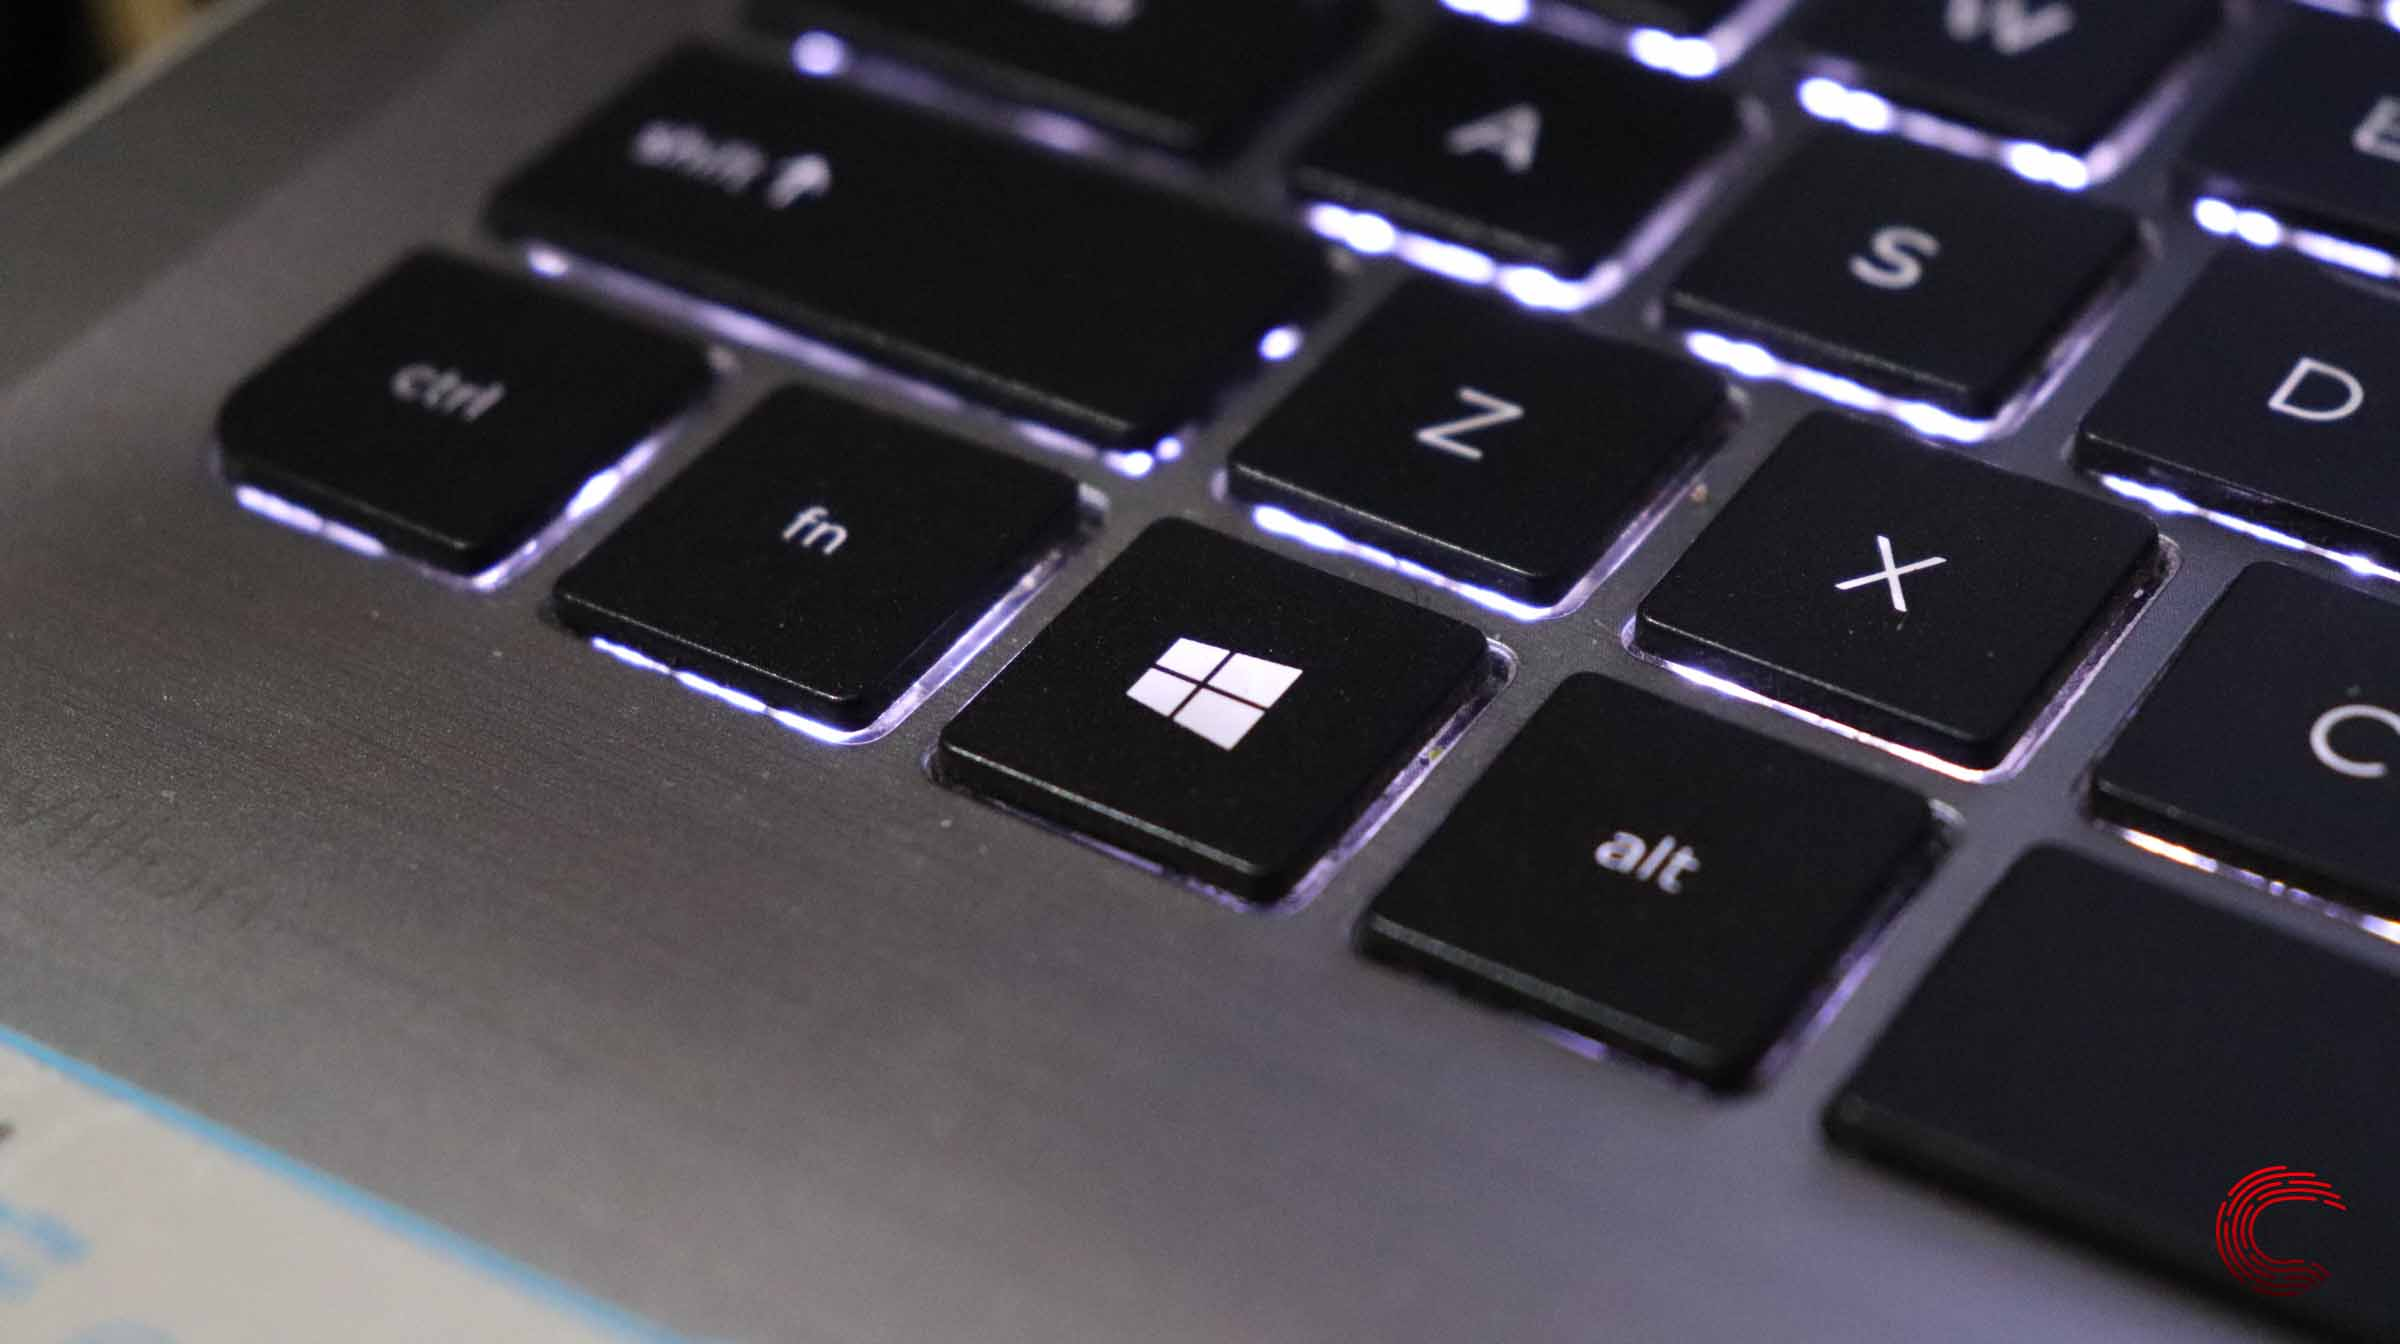 What are Modifier Keys and why does your keyboard have two of them?